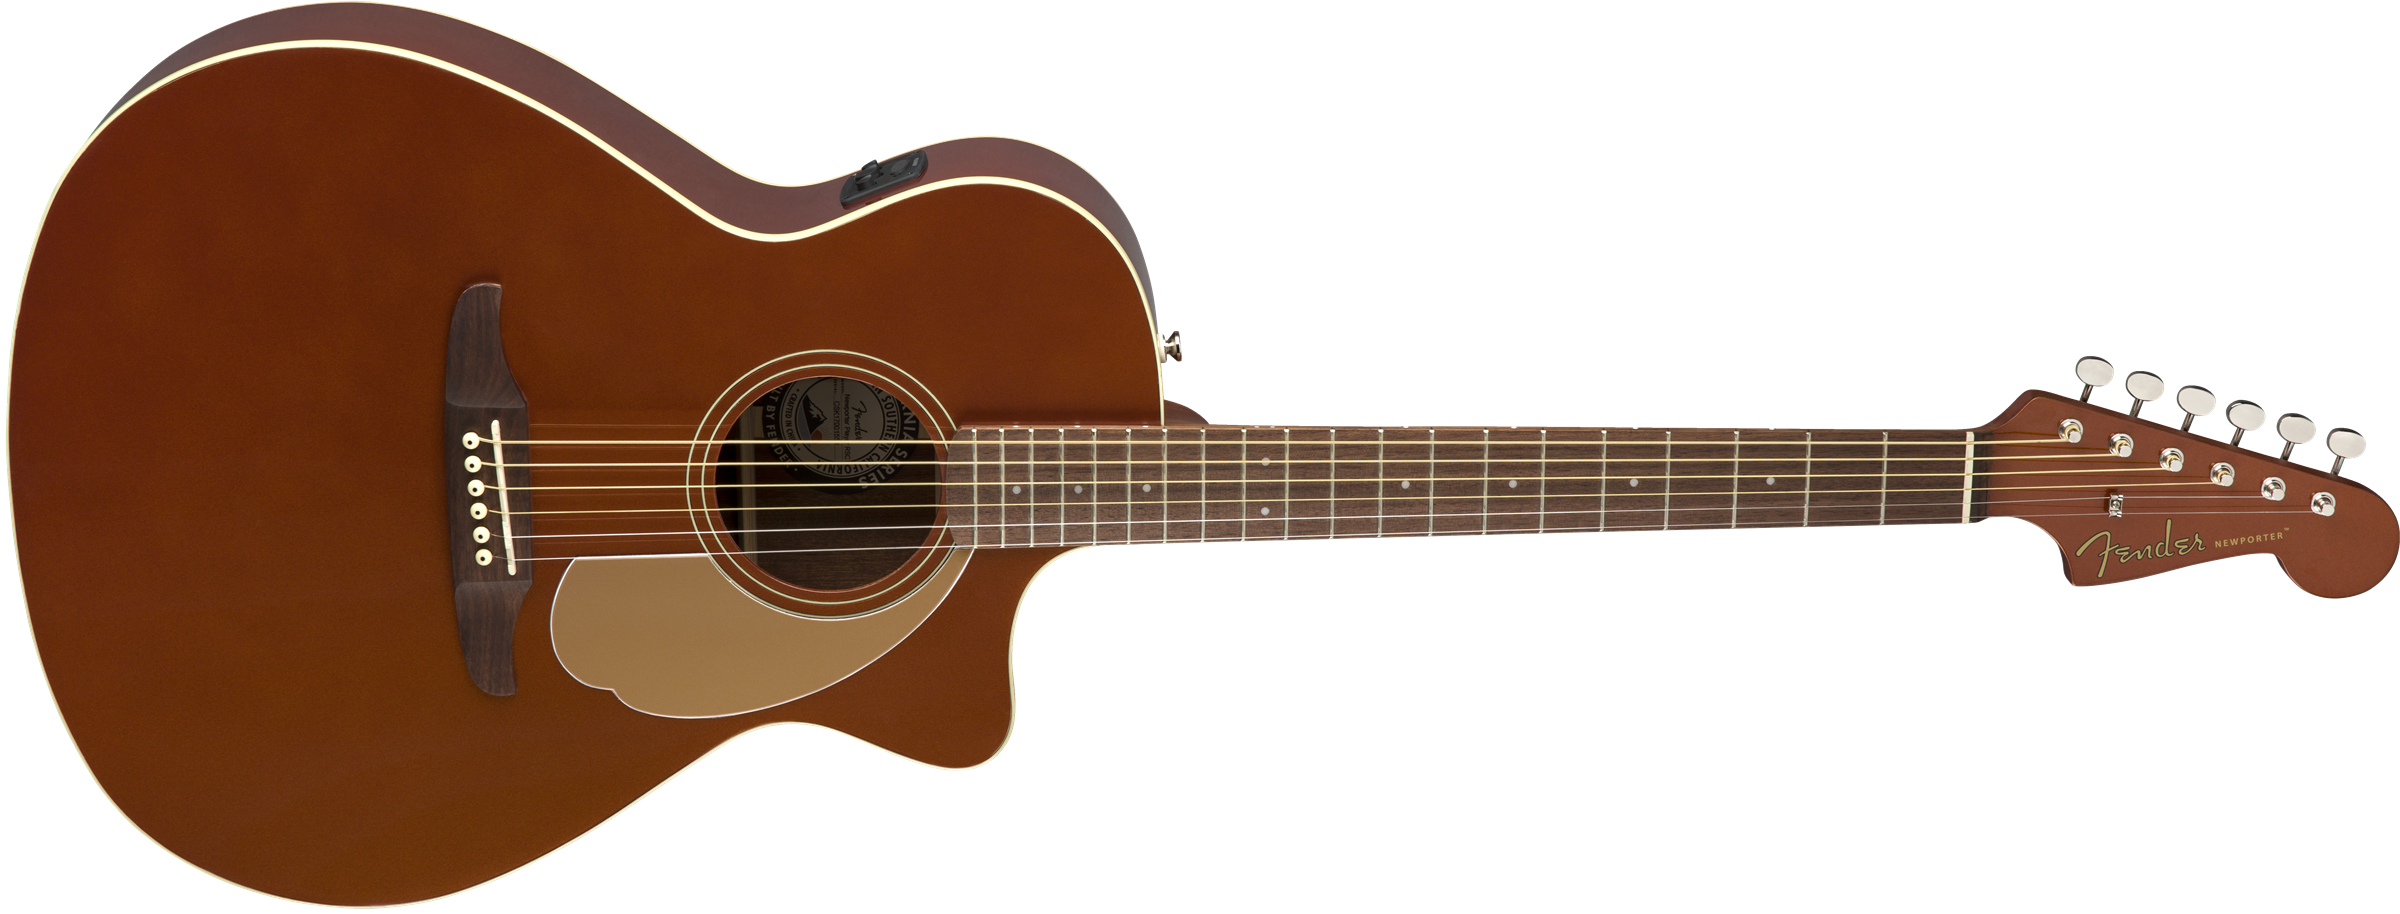 Image of the Fender Newporter Player, Walnut Fingerboard, Rustic Copper